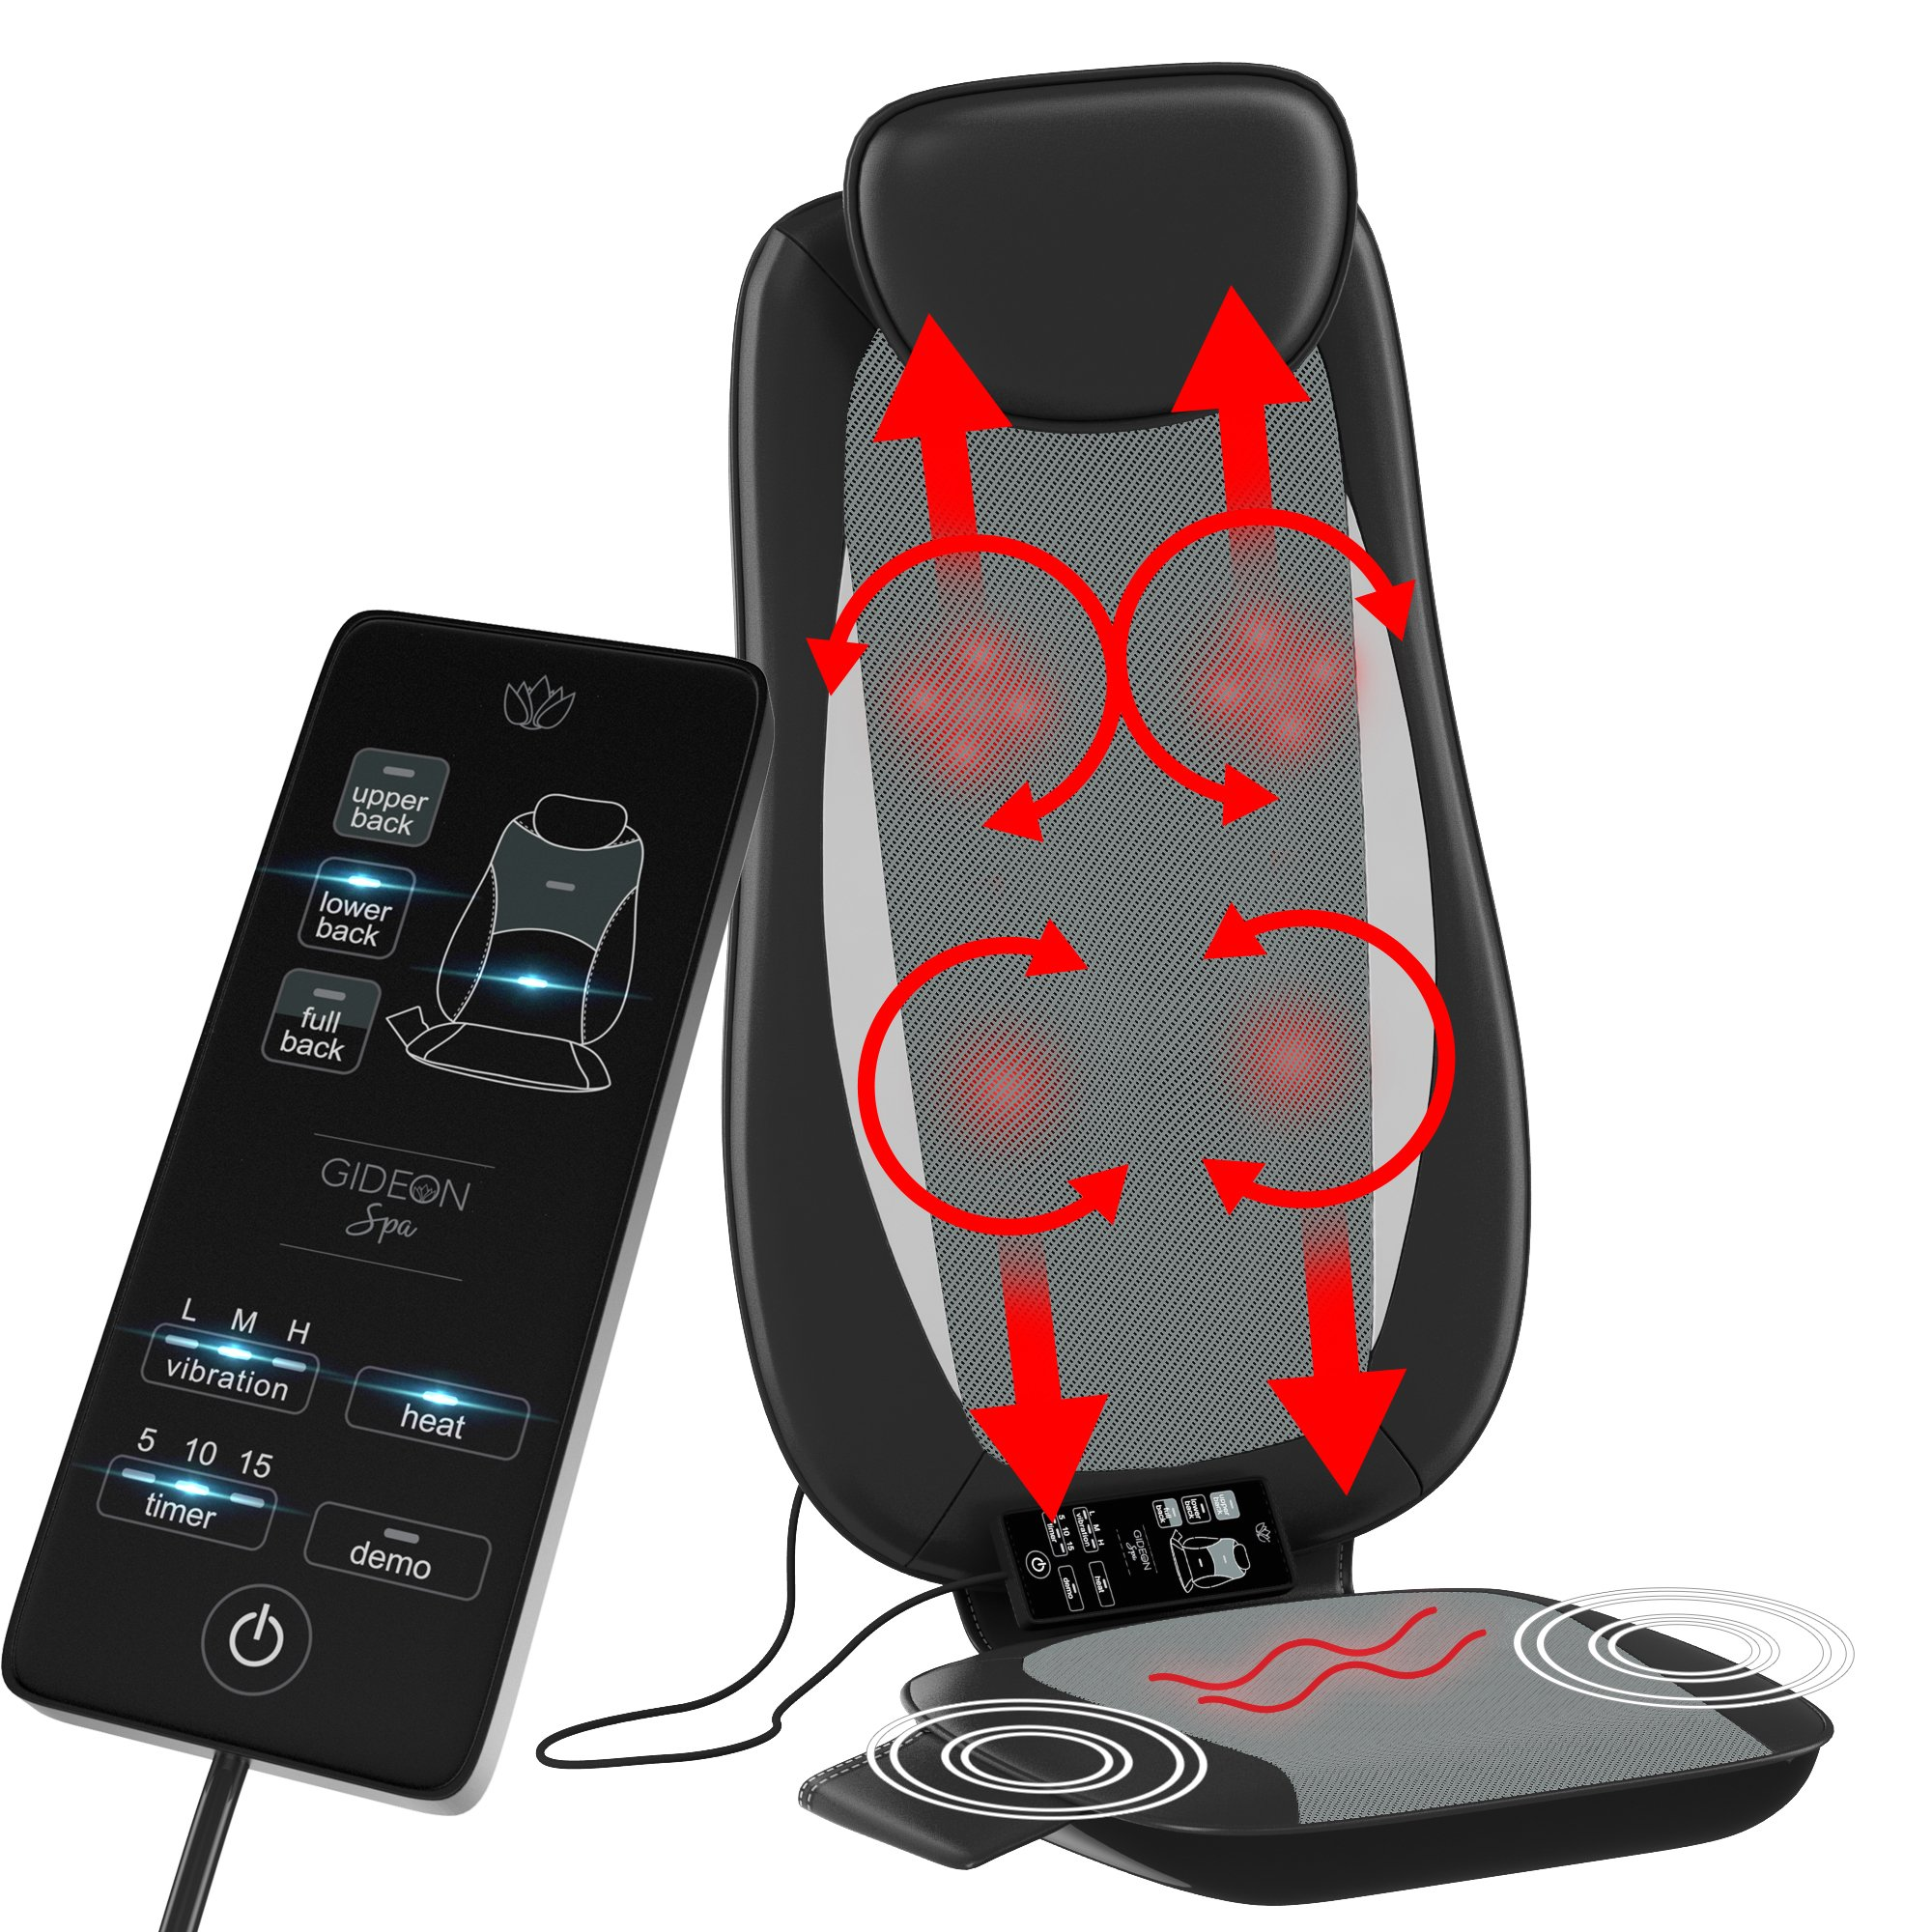 Gideon Six-Program Shiatsu Massager Customizable Massaging Cushion with Heat / Shiatsu 3D Deep Kneading, Percussion and Vibrating - Full Back, Upper back, Lower Back or Pinpoint Precise Massage Spot